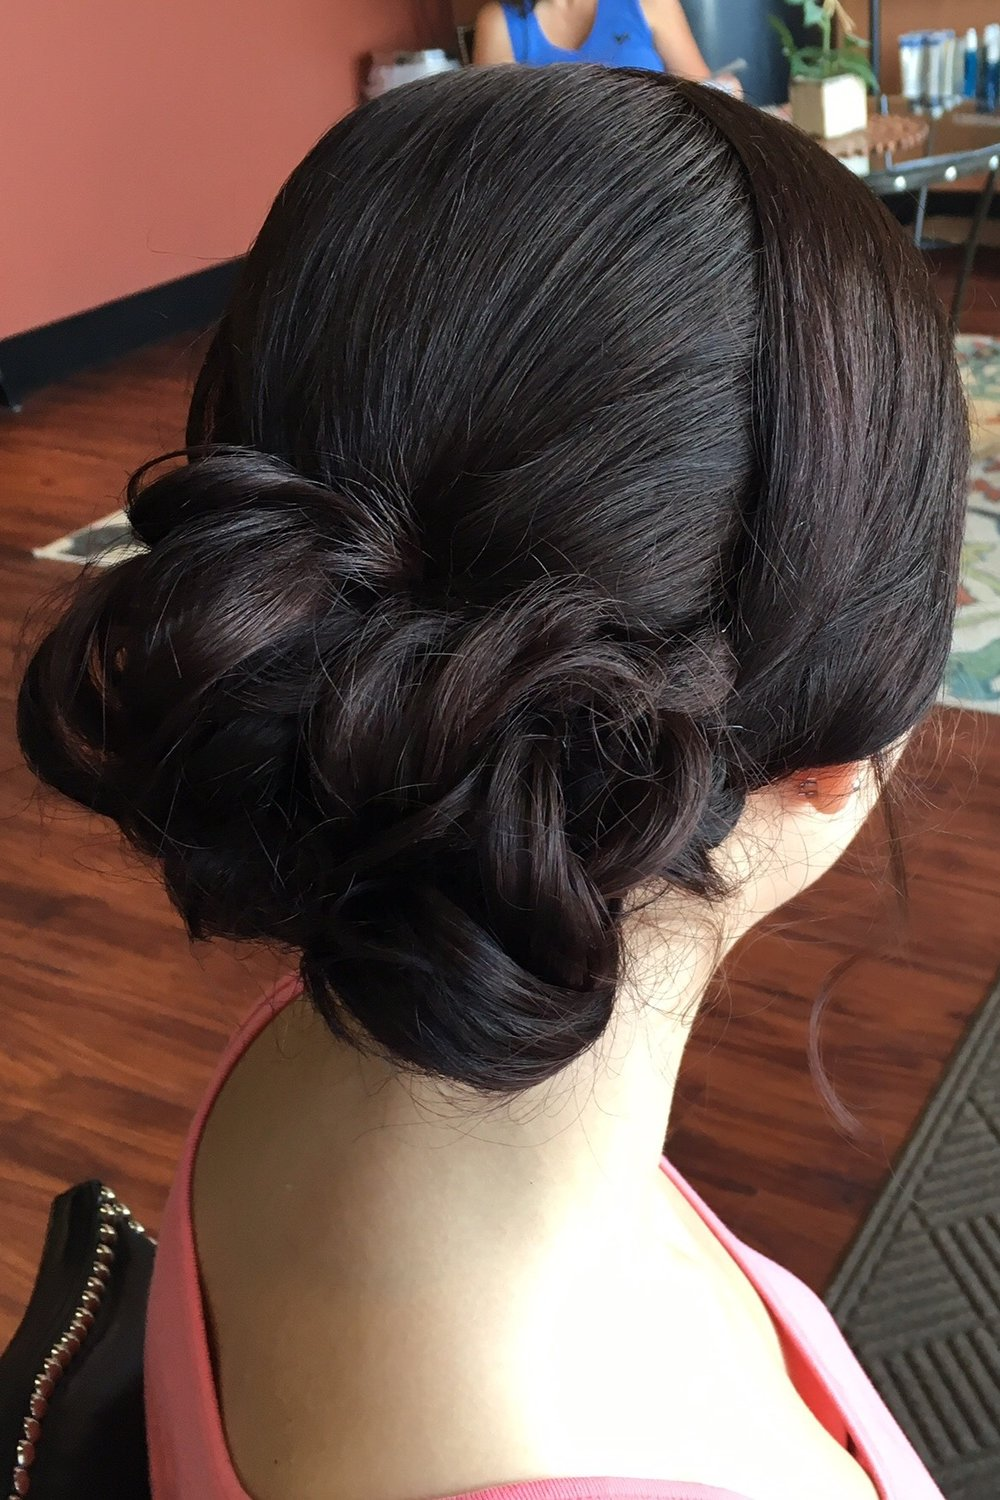 The Pinned Curls:  This beauty is about as classic of an updo as you can get! It is sleek, it is elegant, and it is a go-to style for nearly every type of event! Versatility reigns supreme with this style - dress it up with glitter, flowers, and adornments, or keep it classic and elegant all on it's own! You cannot go wrong with this style. Your photos will thank you.